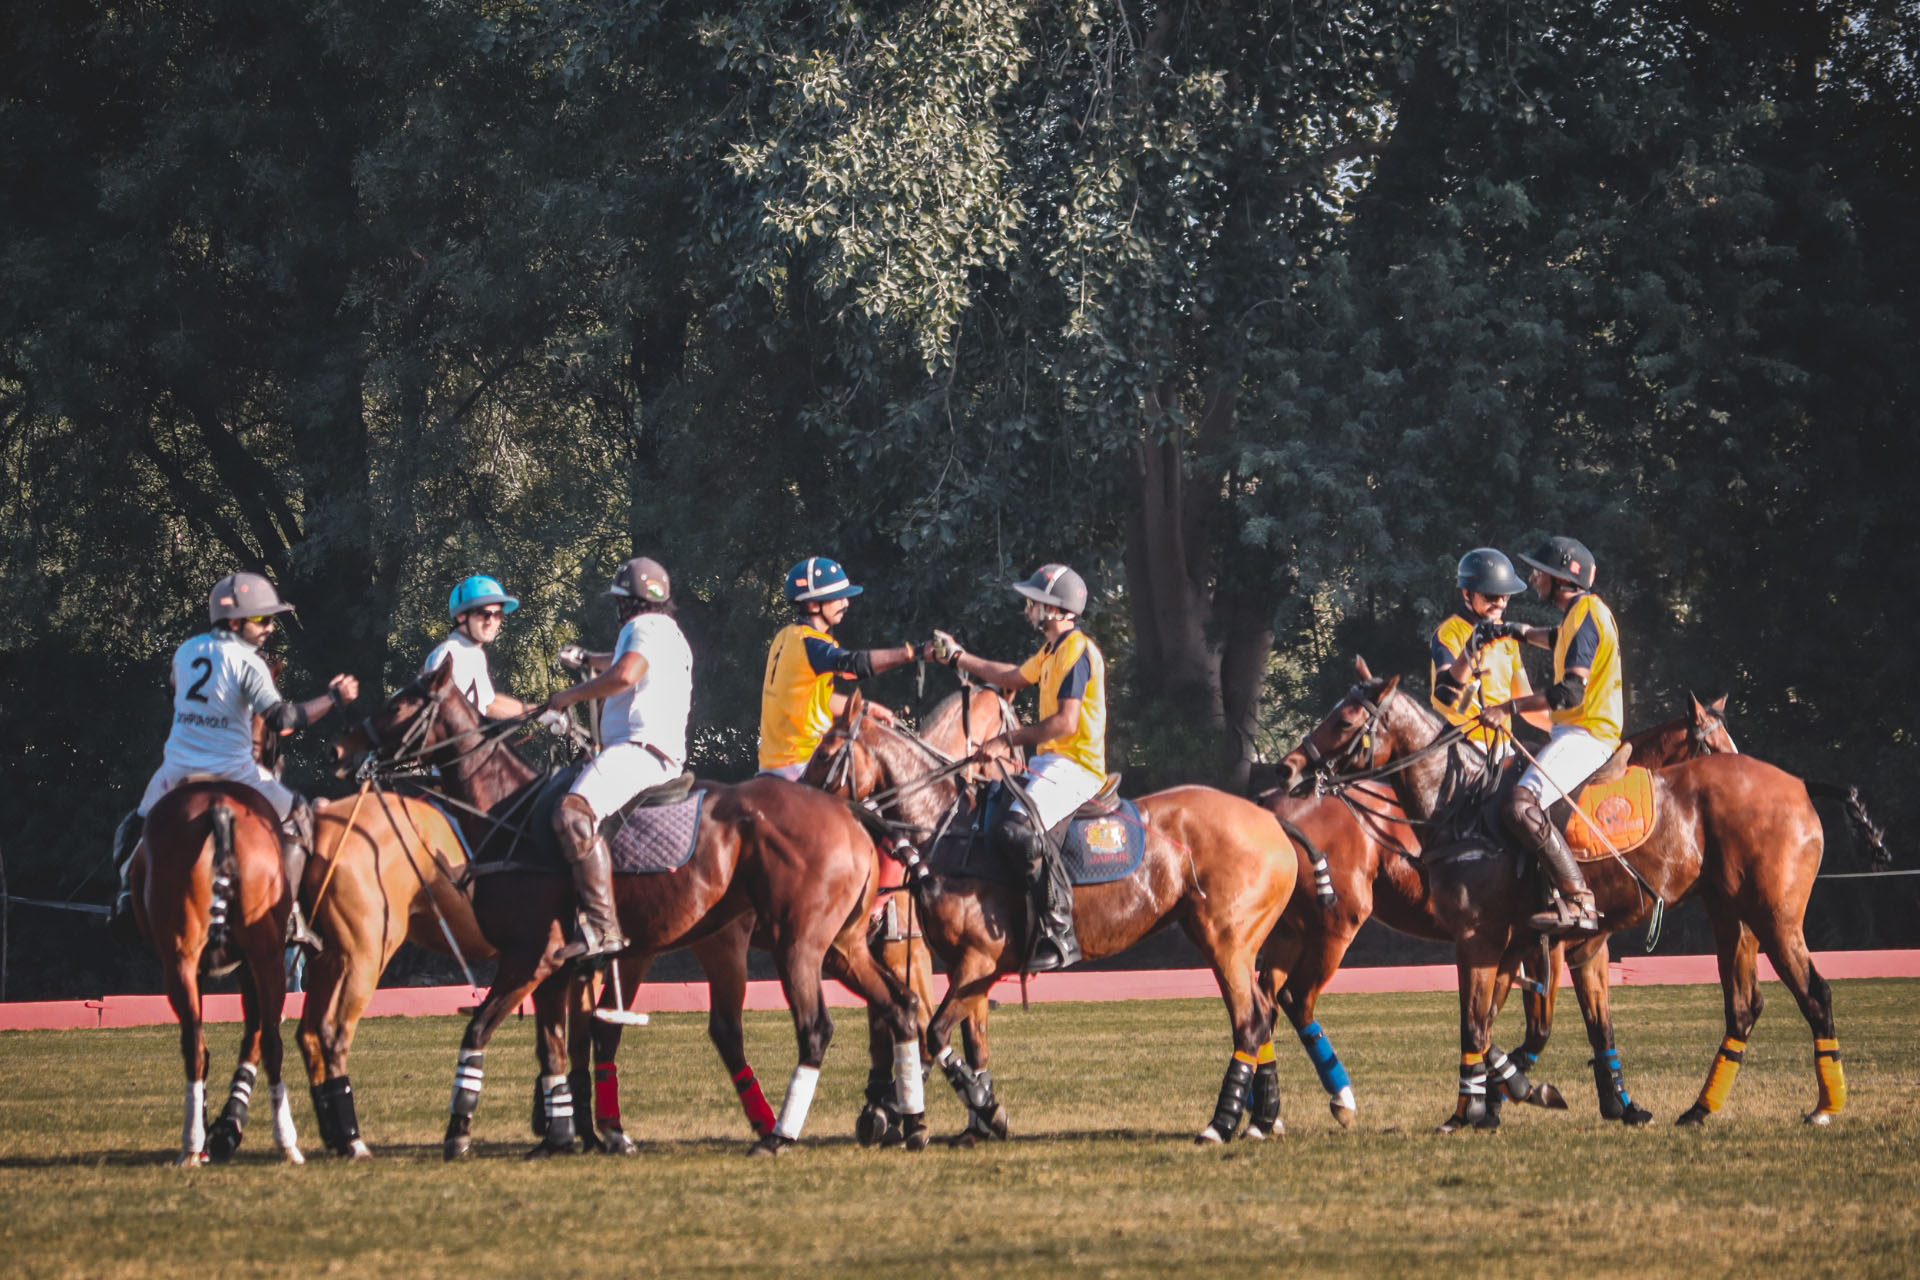 ARMY TIGERS BEAT LANCERS AT THE ARMY COMMANDER'S CUP EXHIBITION MATCH AT THE 21st JODHPUR POLO SEASON 2020!